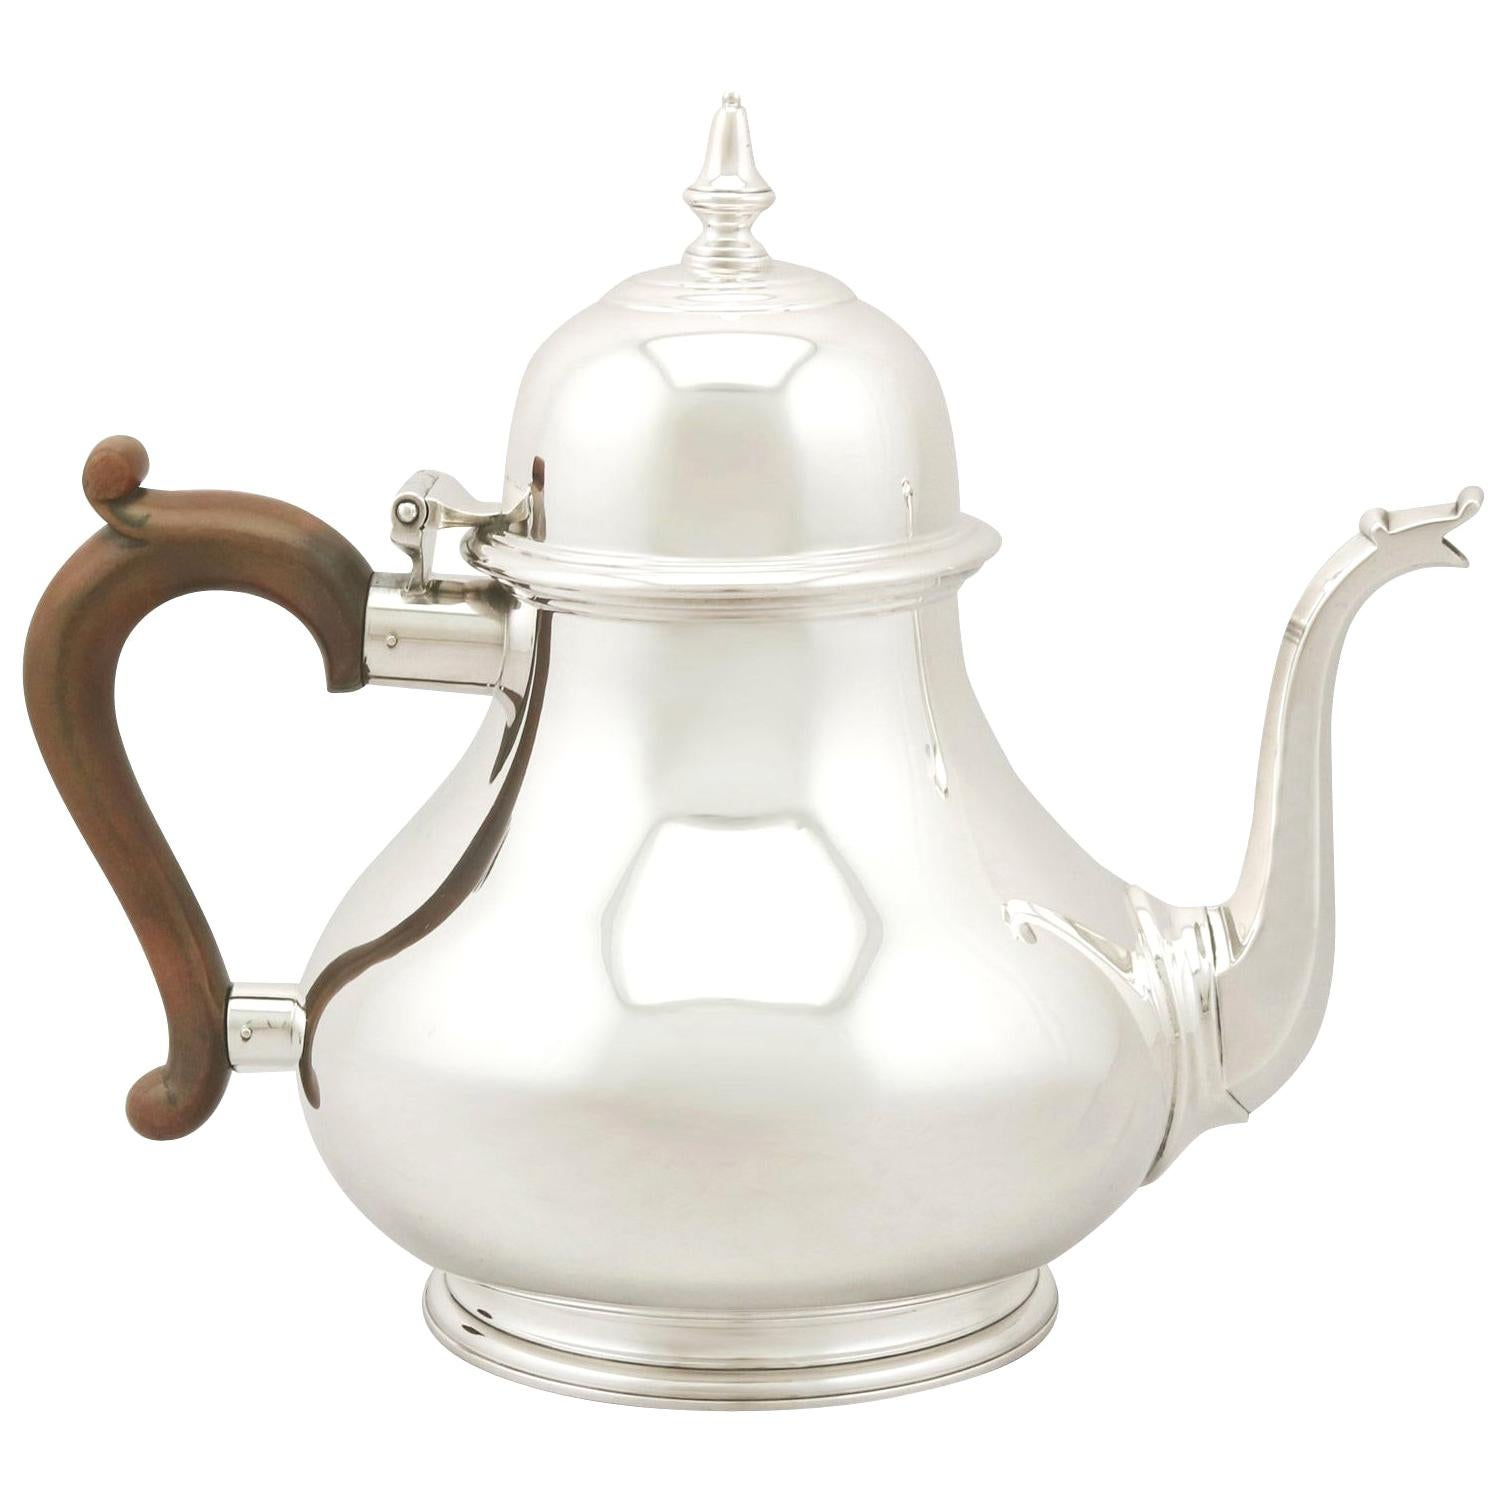 1970s Sterling Silver Teapot